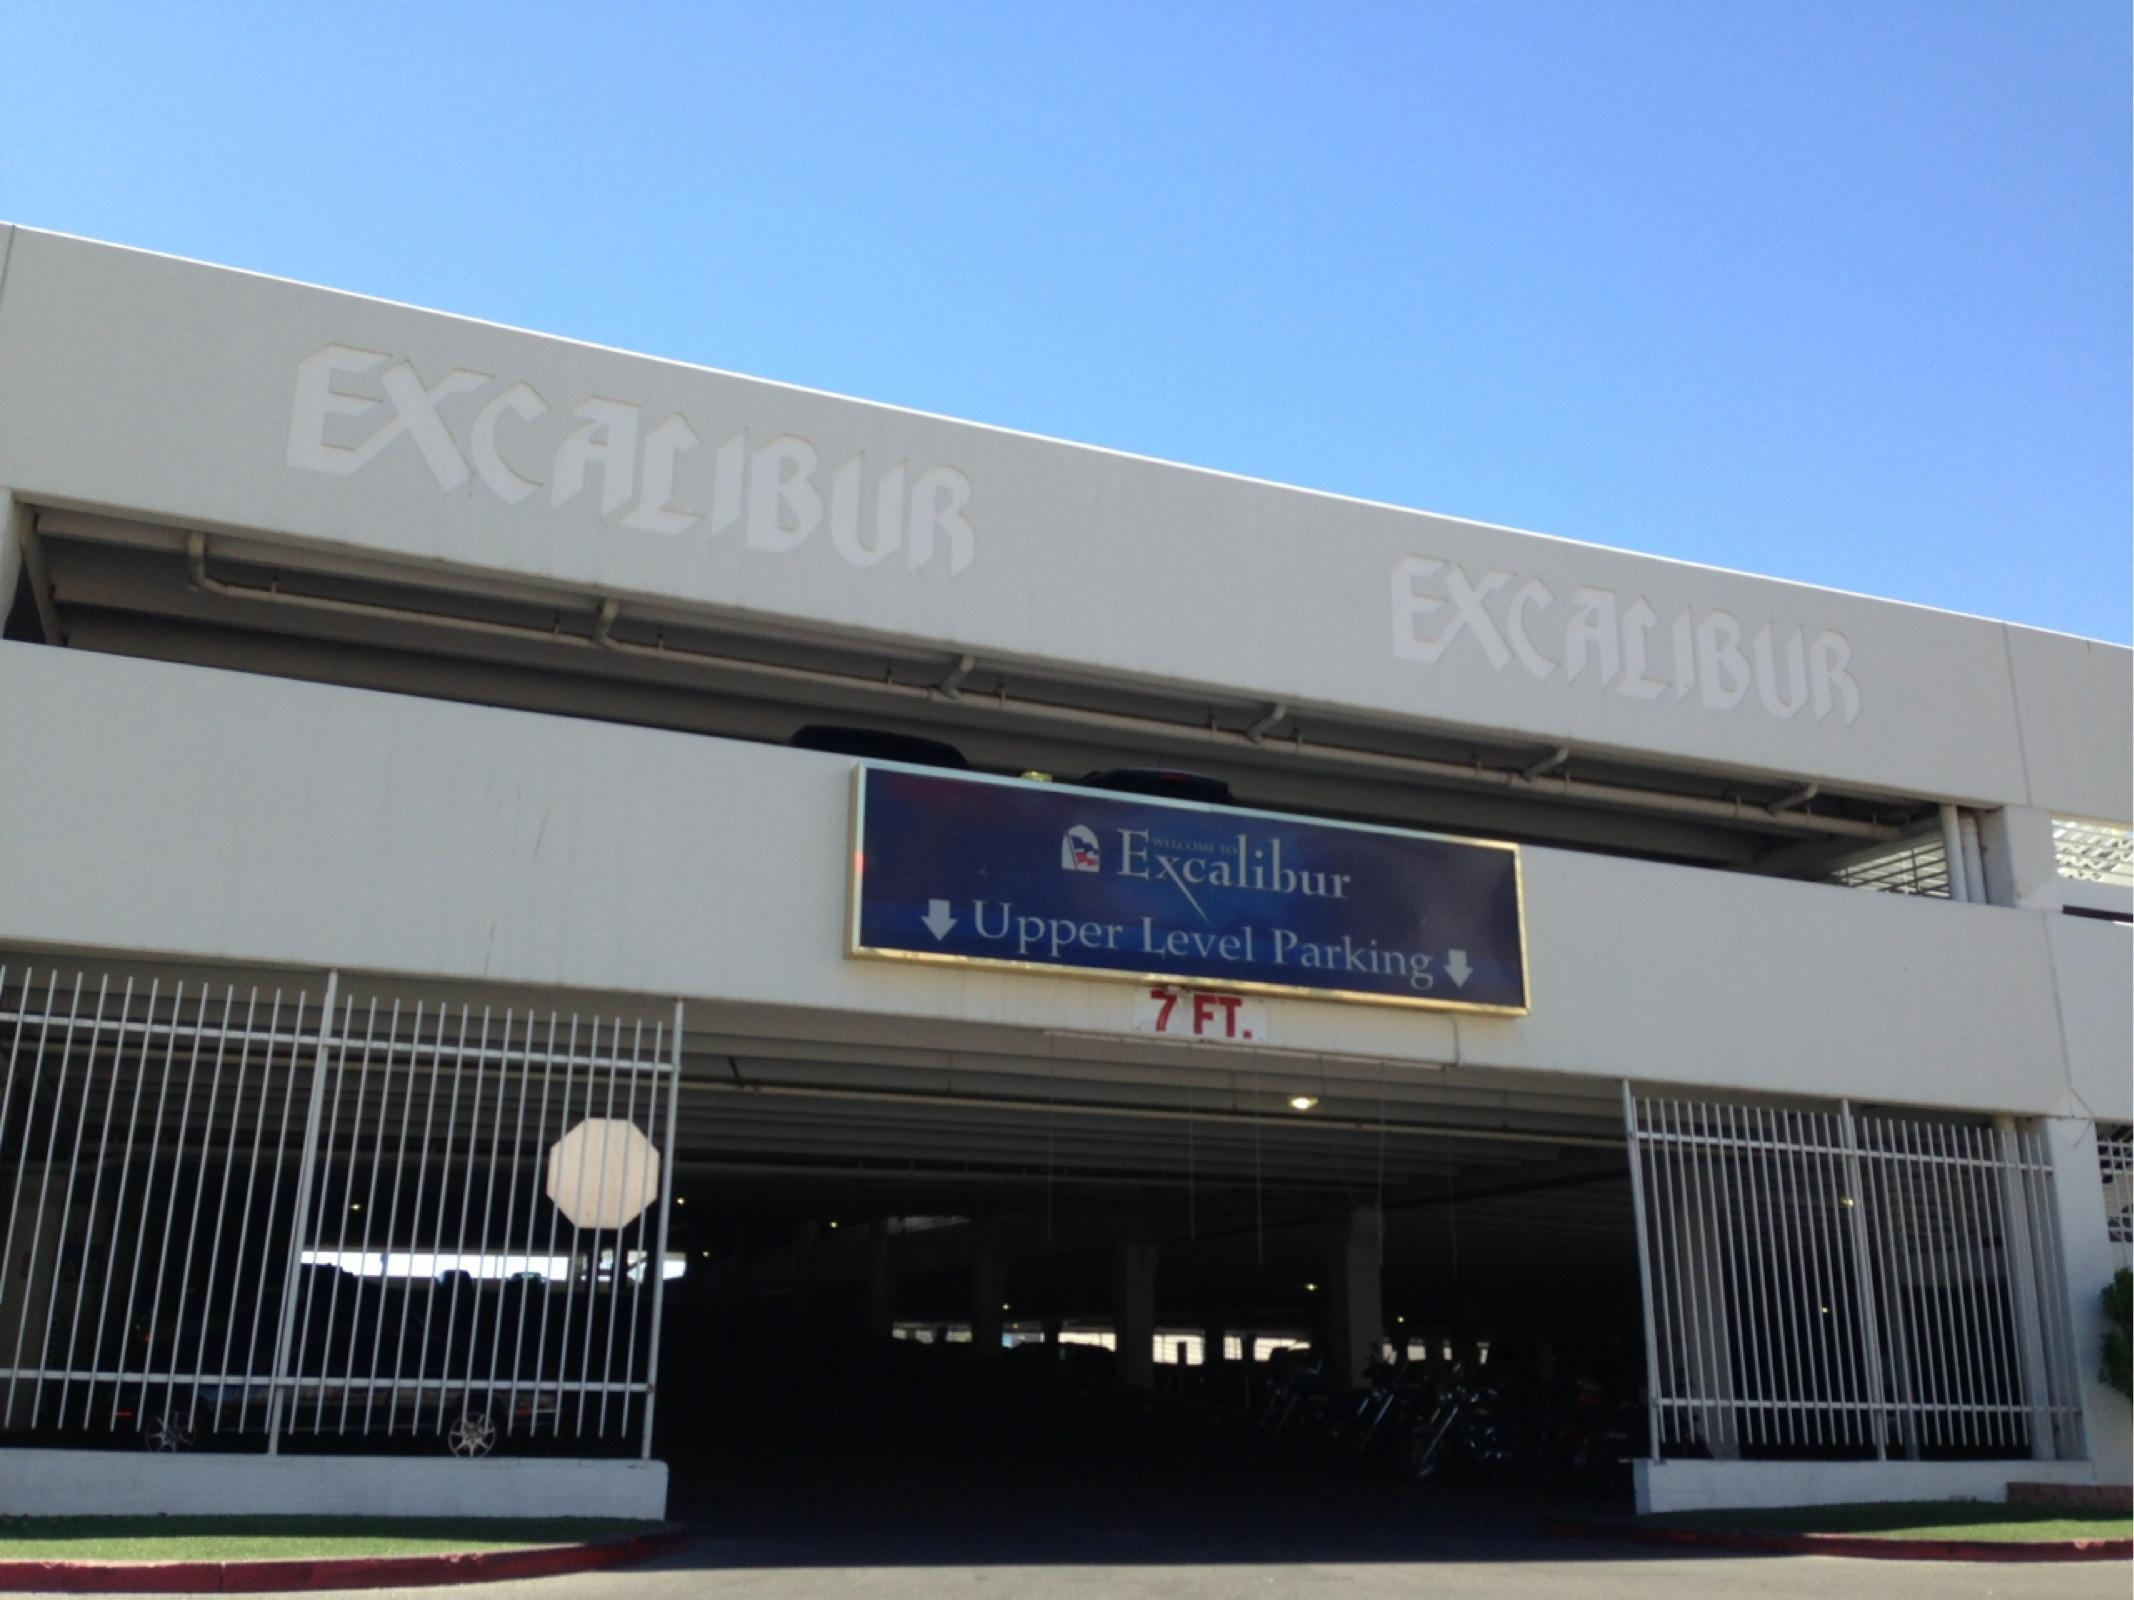 Excalibur Hotel Casino Parking